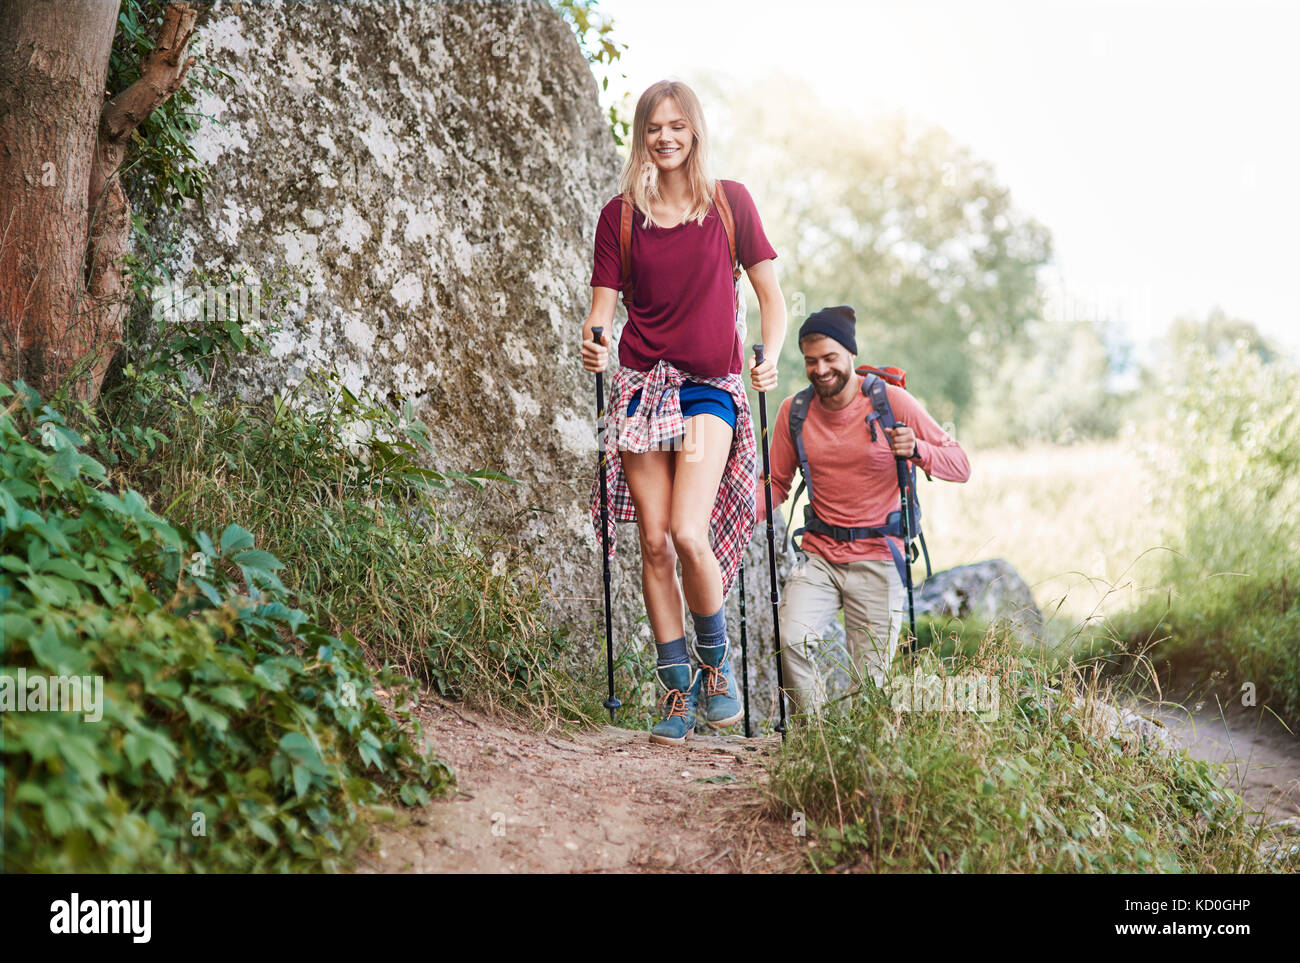 Couple with walking poles hiking in forest, Krakow, Malopolskie, Poland, Europe - Stock Image